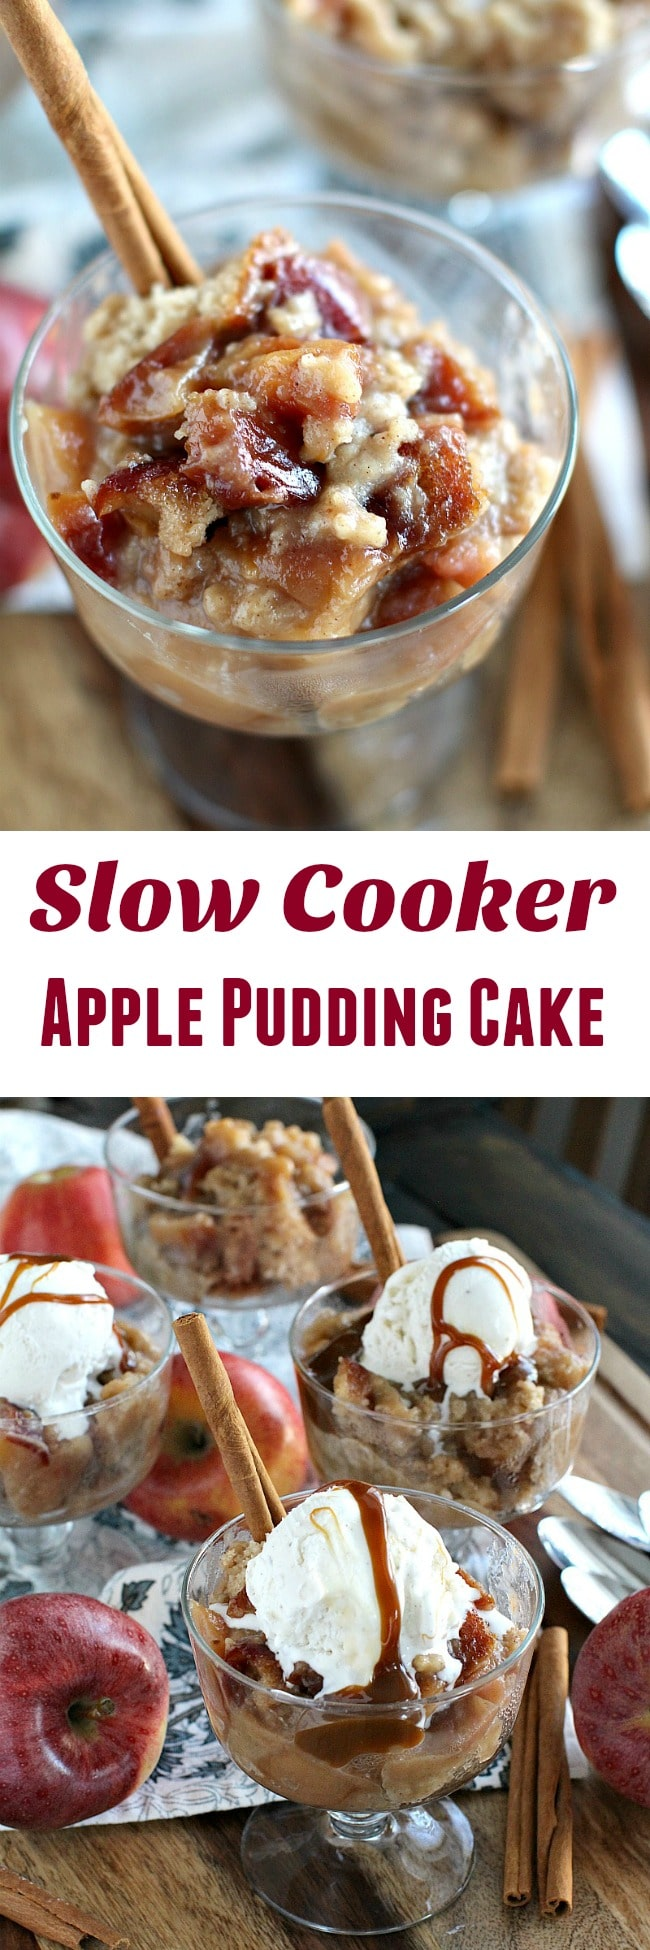 Slow Cooker Apple Pudding Cake is easy to make, loaded with caramelized apples and cinnamon and served warm with ice cream and caramel sauce. Made in the InstantPot.